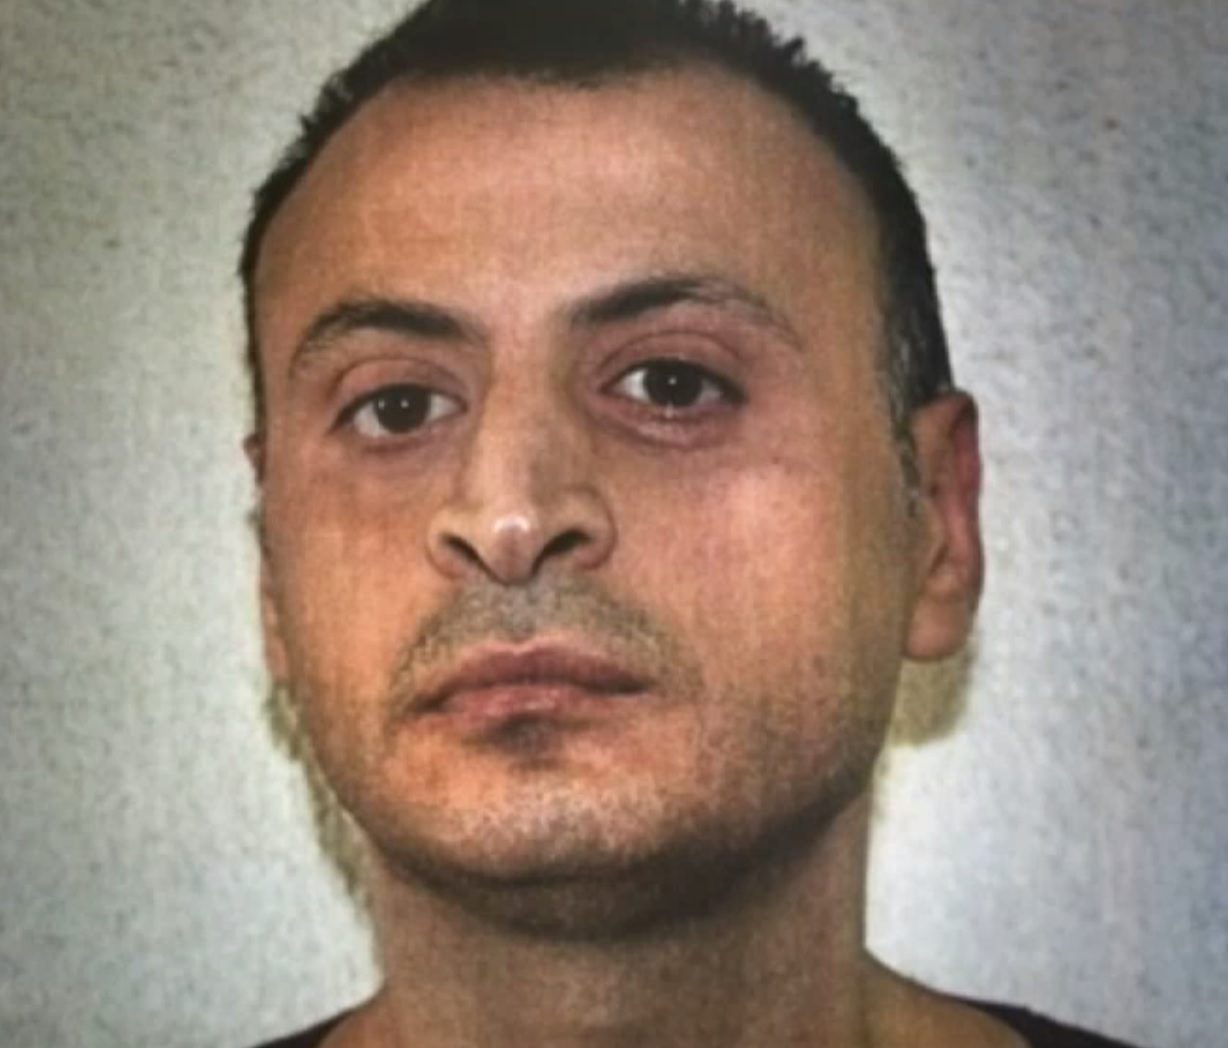 Amer Khayat was cleared of any involvement in the plot by his brothers